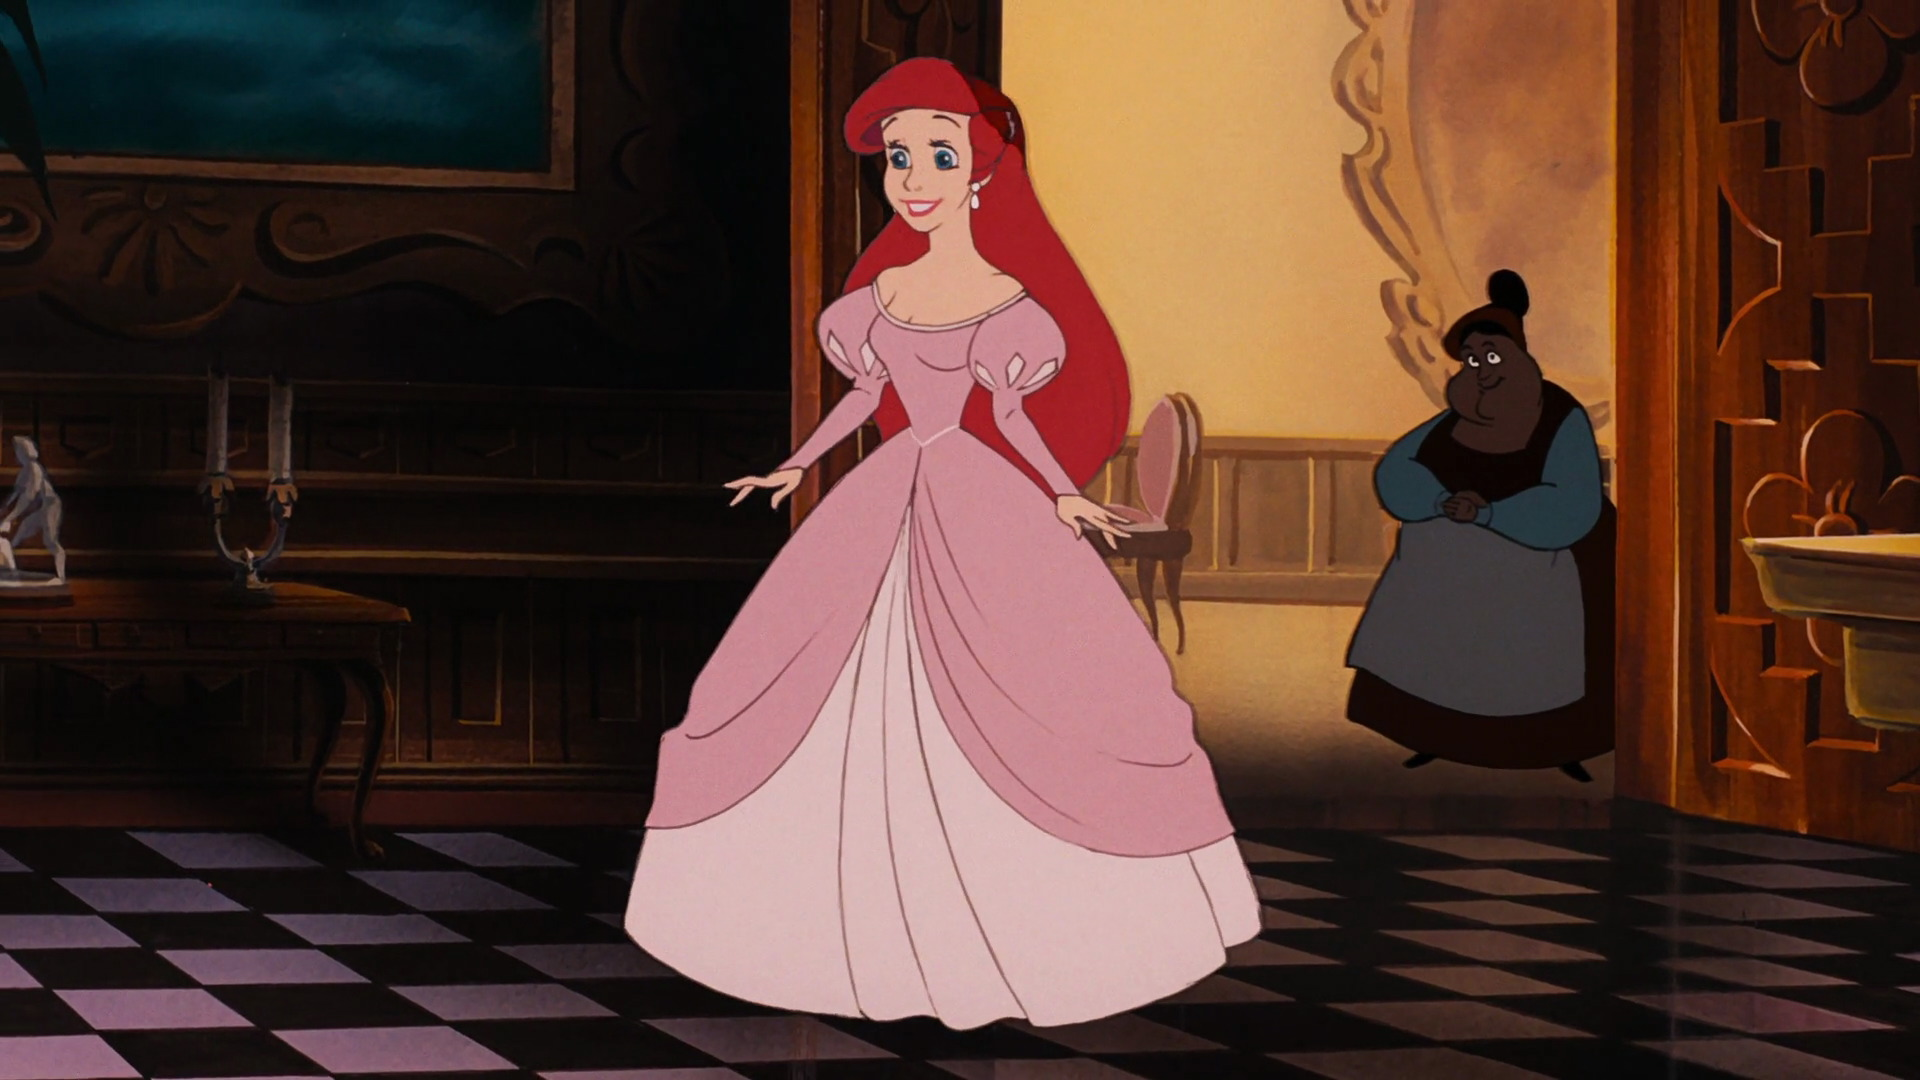 The Chanel Dress Looks Exactly Like Ariel S Fabulous Pink From Little Mermaid